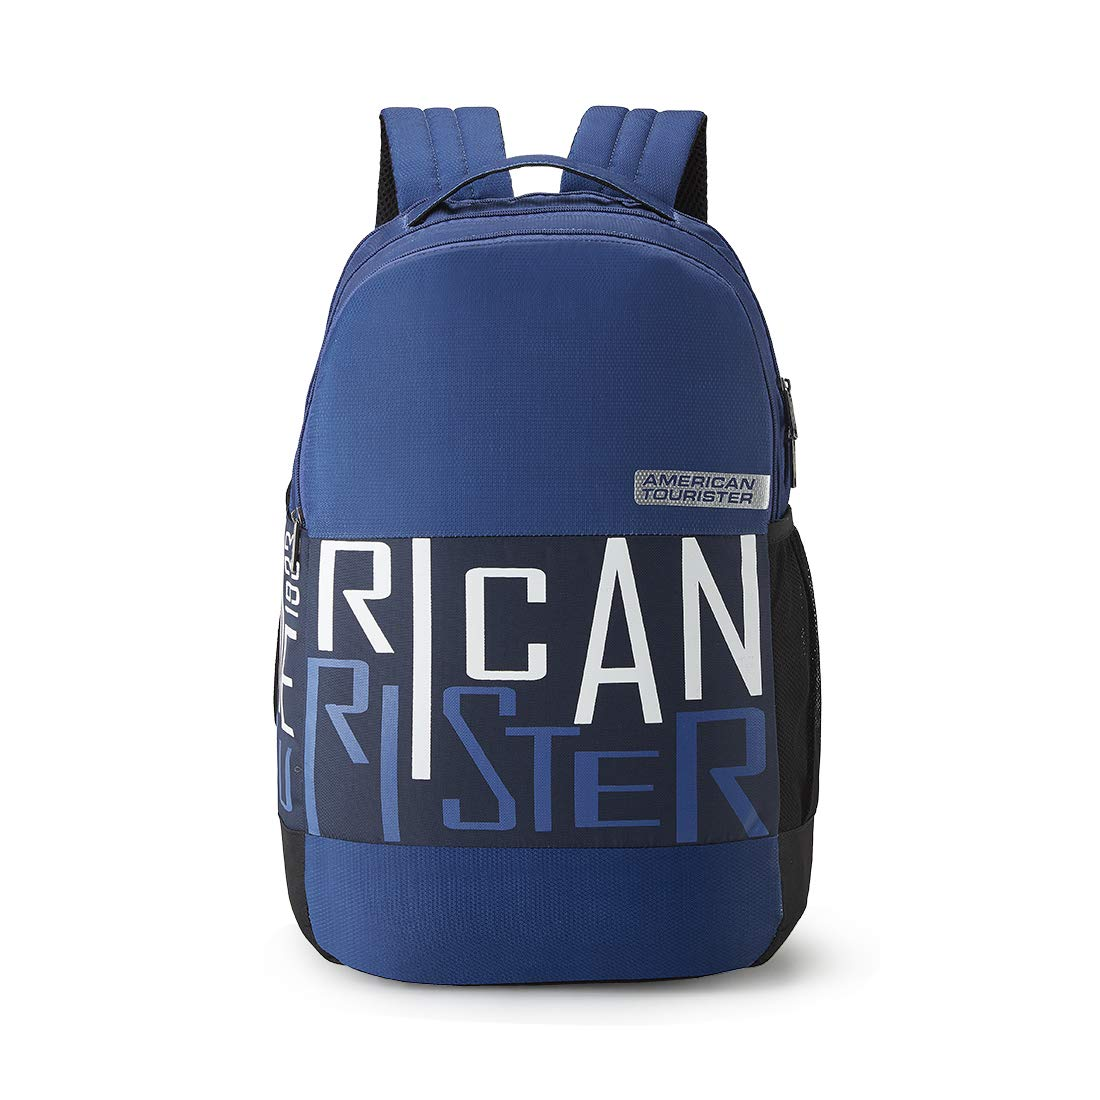 American Tourister Bounce 28 Ltrs Blue Casual Backpack (FR9